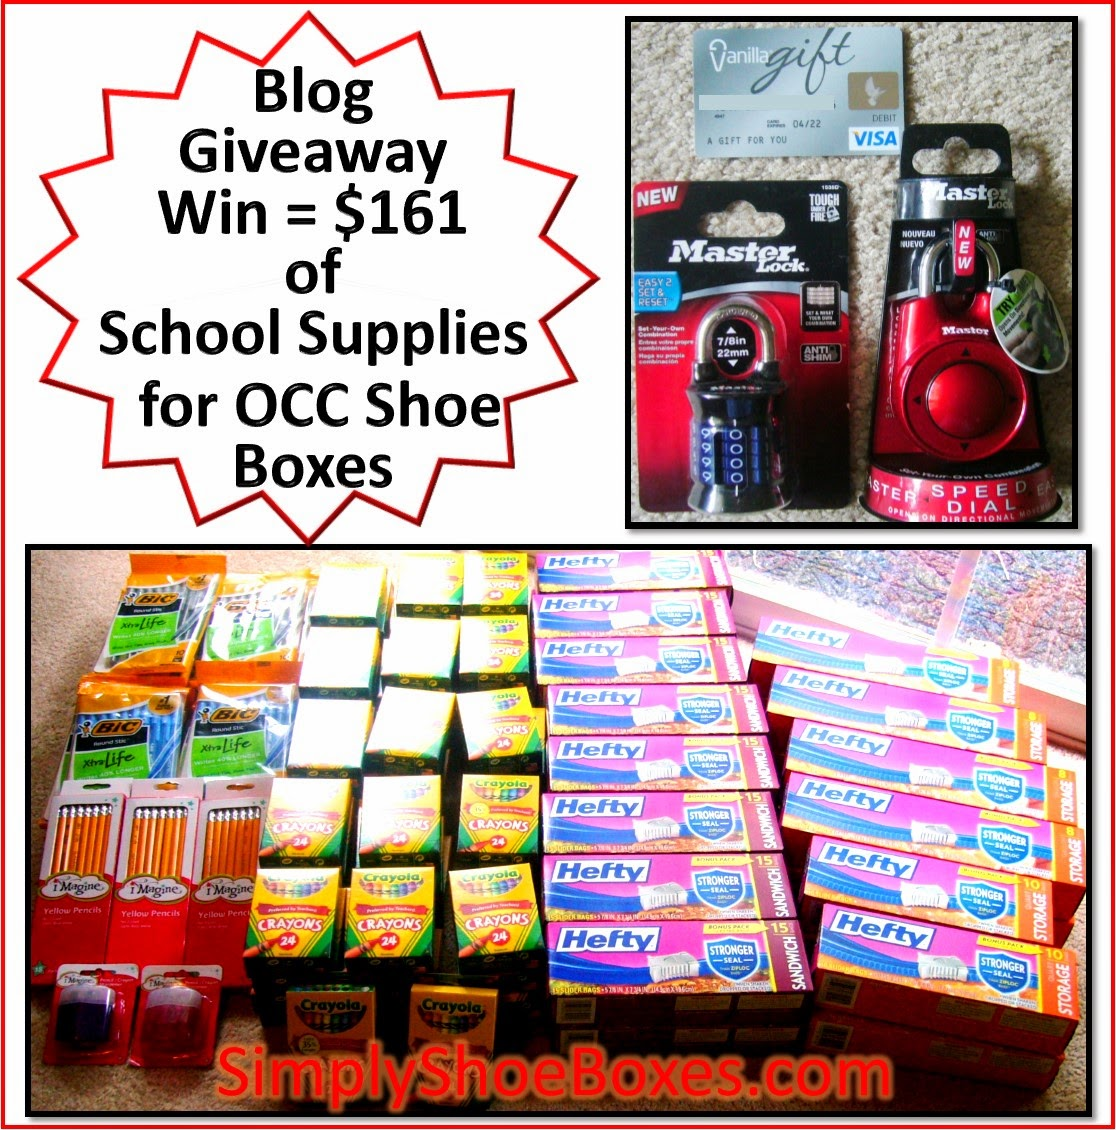 Blog Giveaway Win Provides School Supplies for Operation Christmas Child Boxes